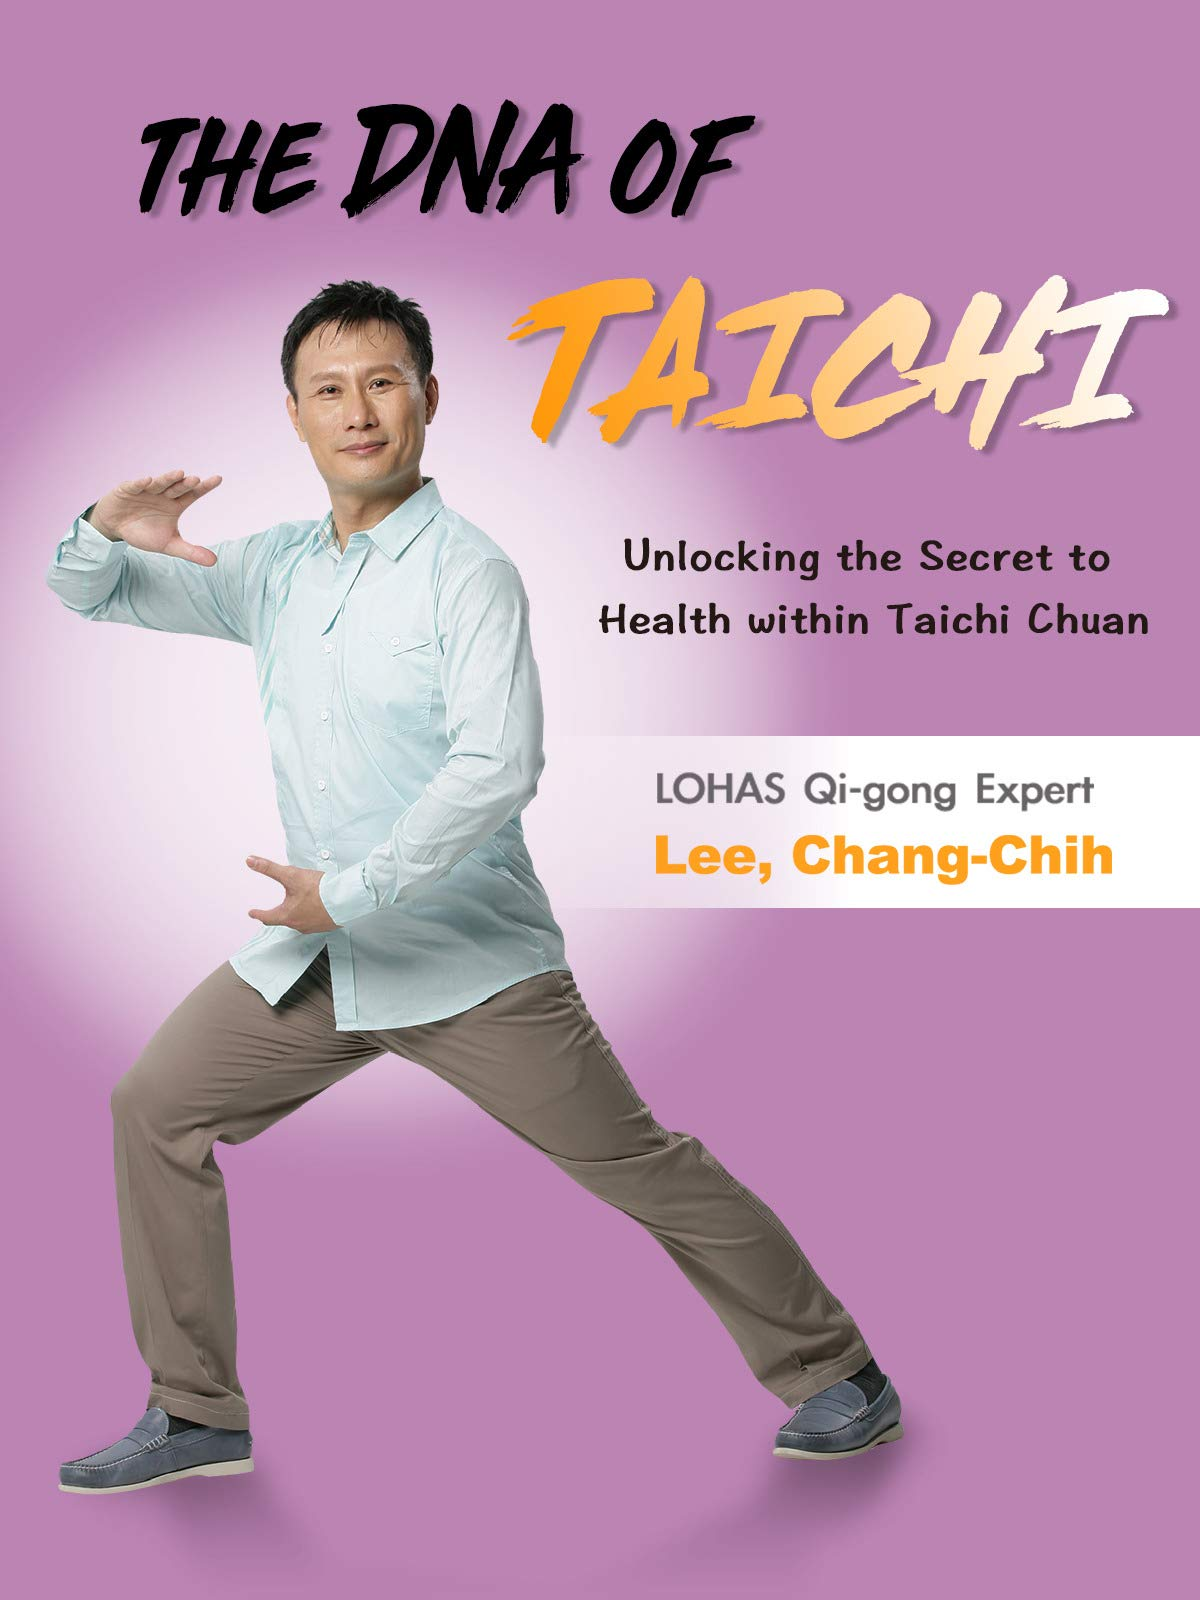 The DNA of Taichi: Unlocking the Secret to Health within Taichi Chuan (Chinese Audio)